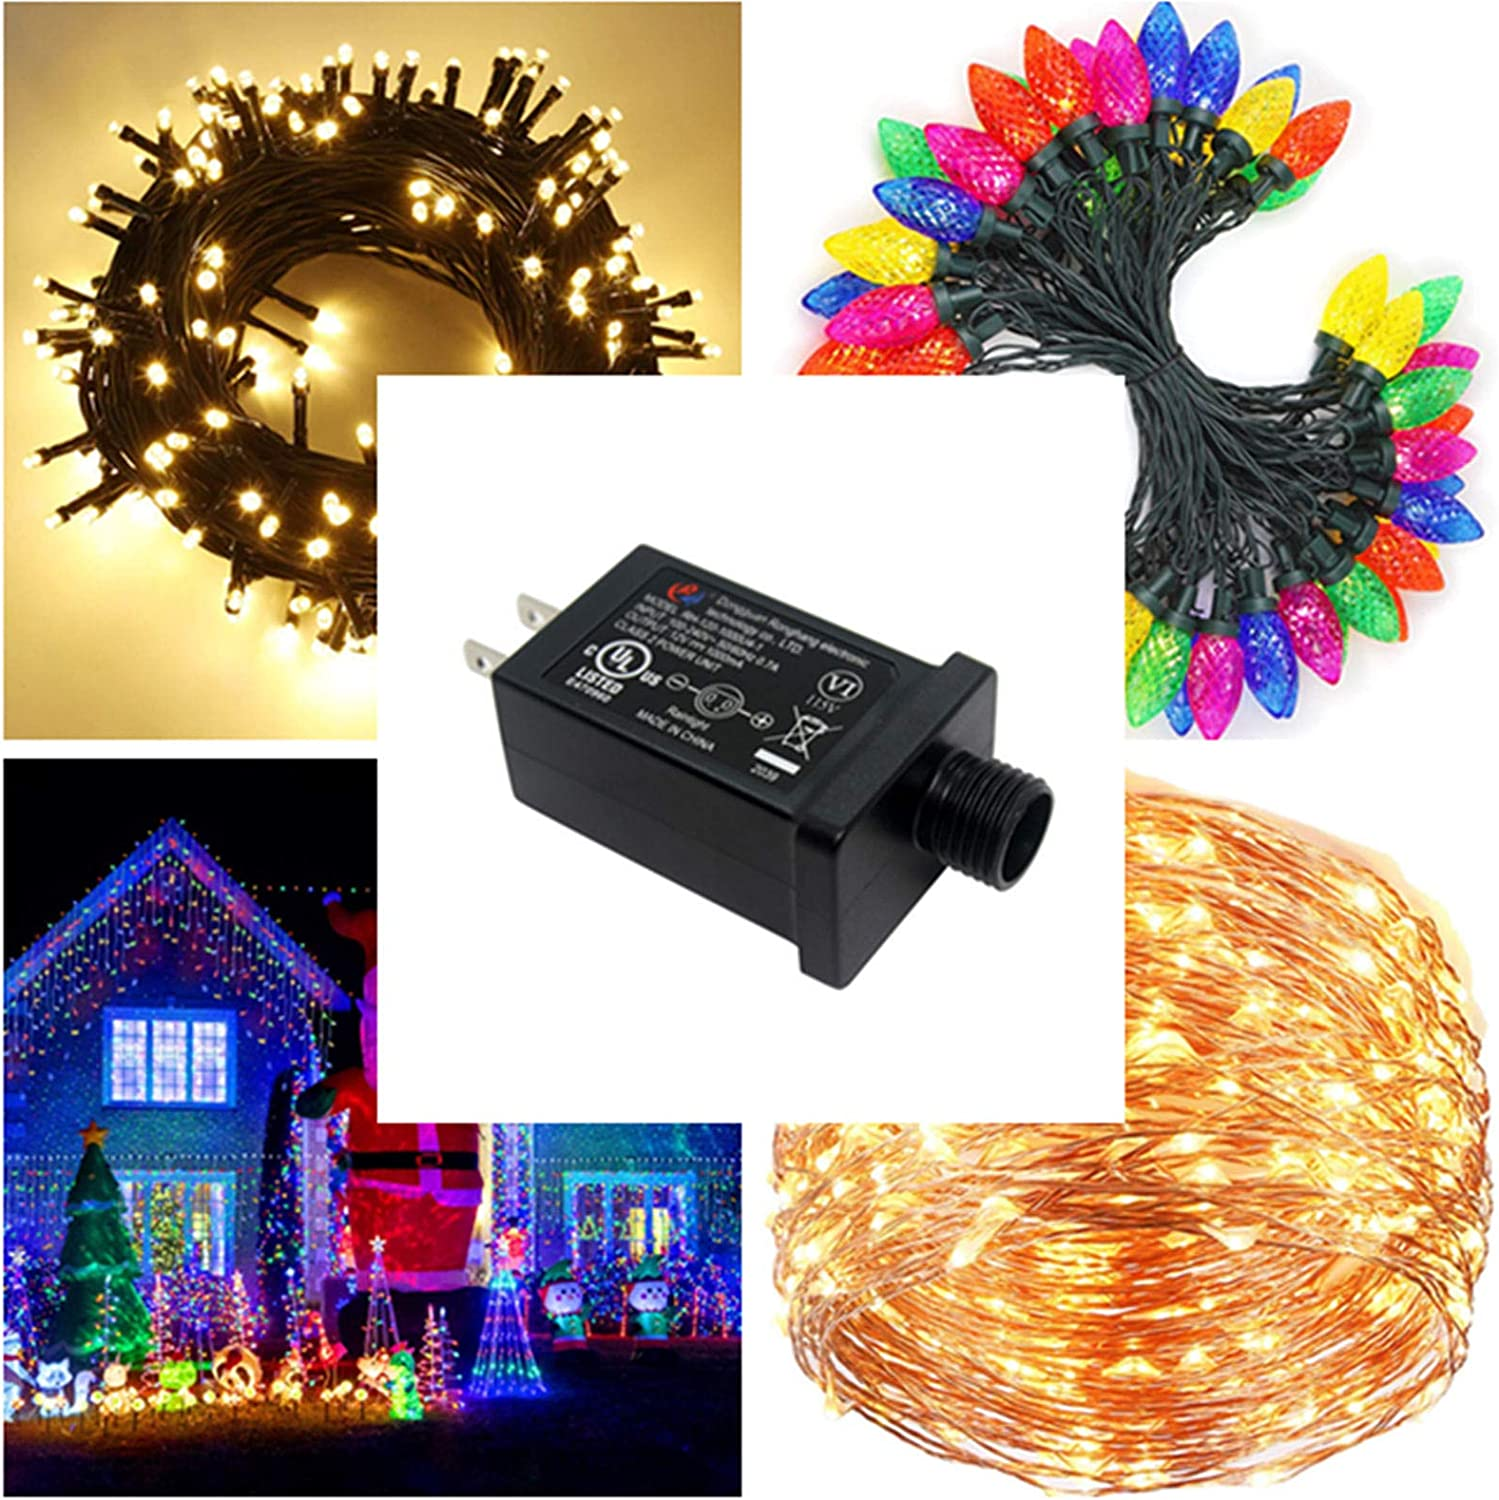 String Light Inflatable Device Fountain Lights 12V 1A Class 2 Power Supply LED Transformer 12W LED Adapter Replacement for Christmas Tree